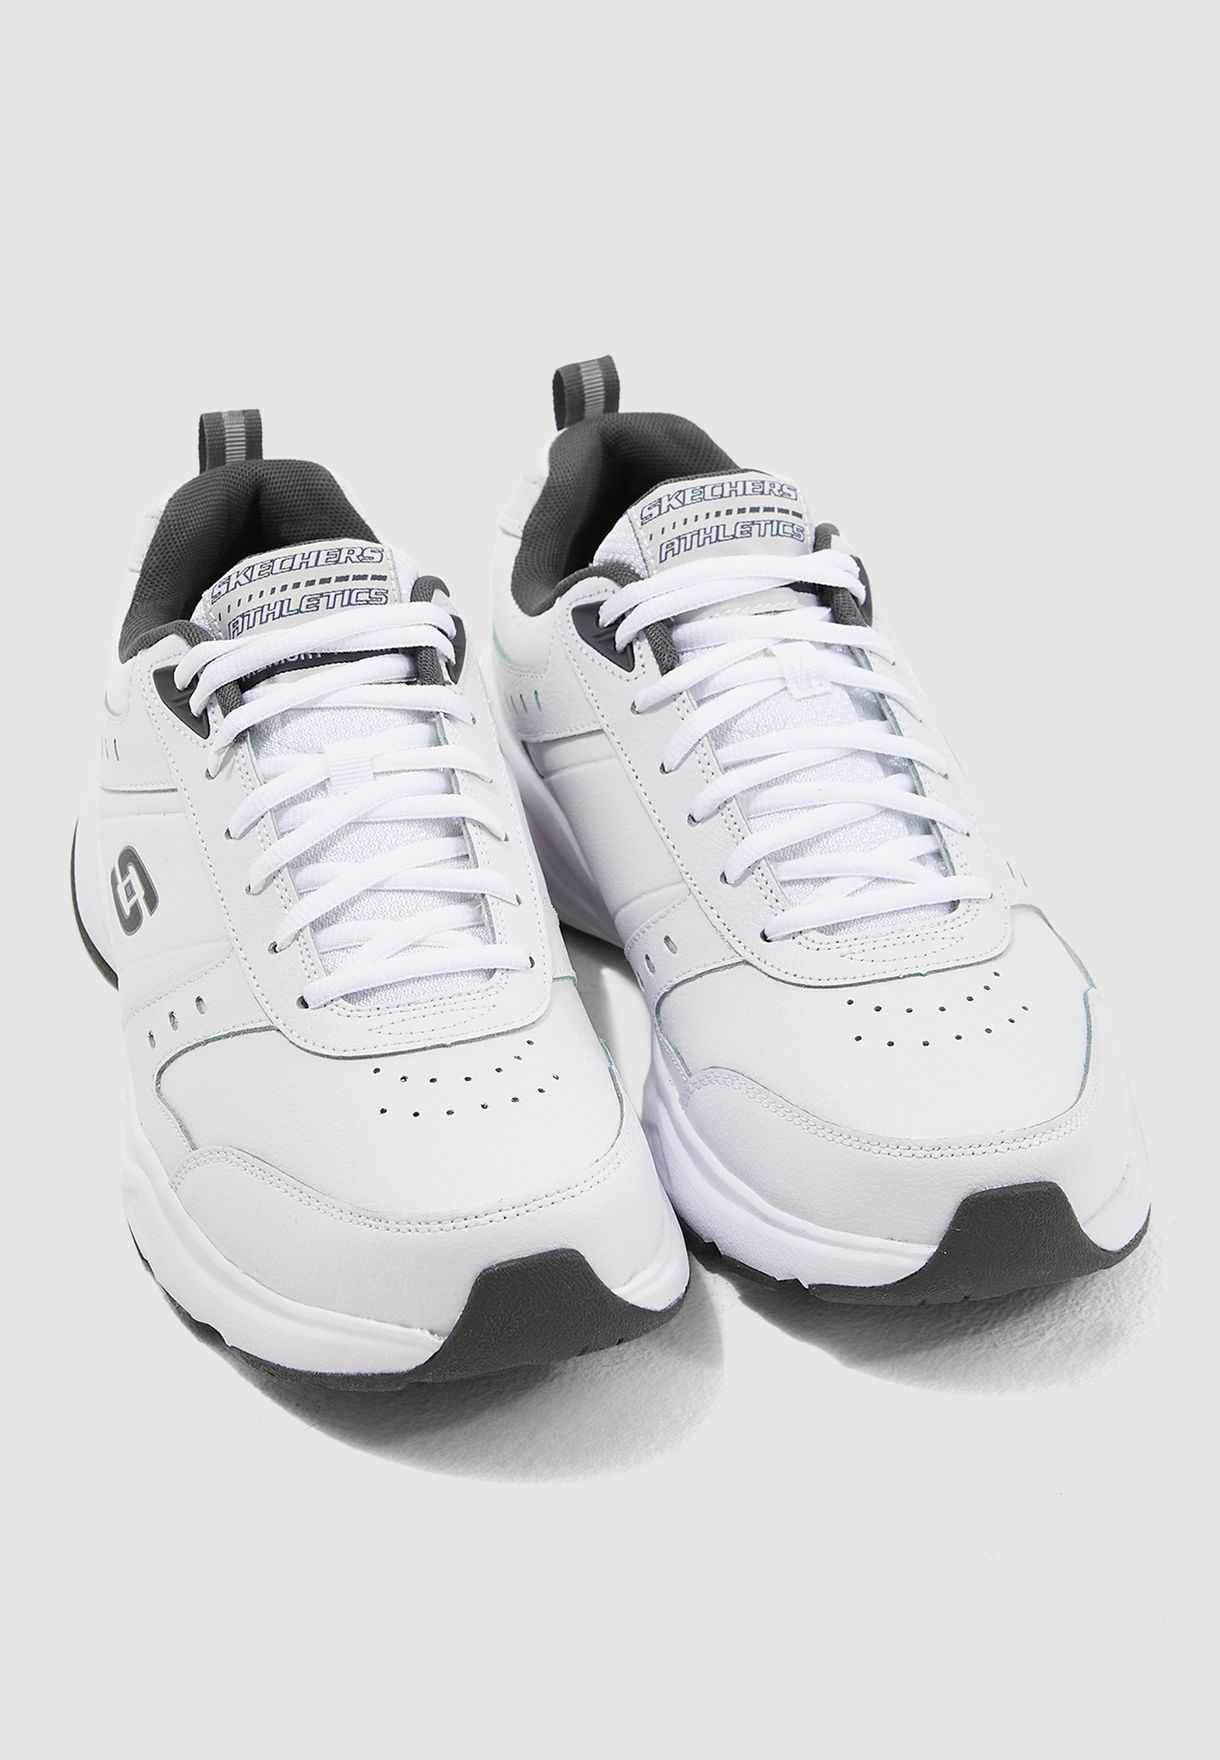 Inconcebible Nombre provisional Visualizar  Buy Skechers white Haniger for Men in MENA, Worldwide   58355-WCC